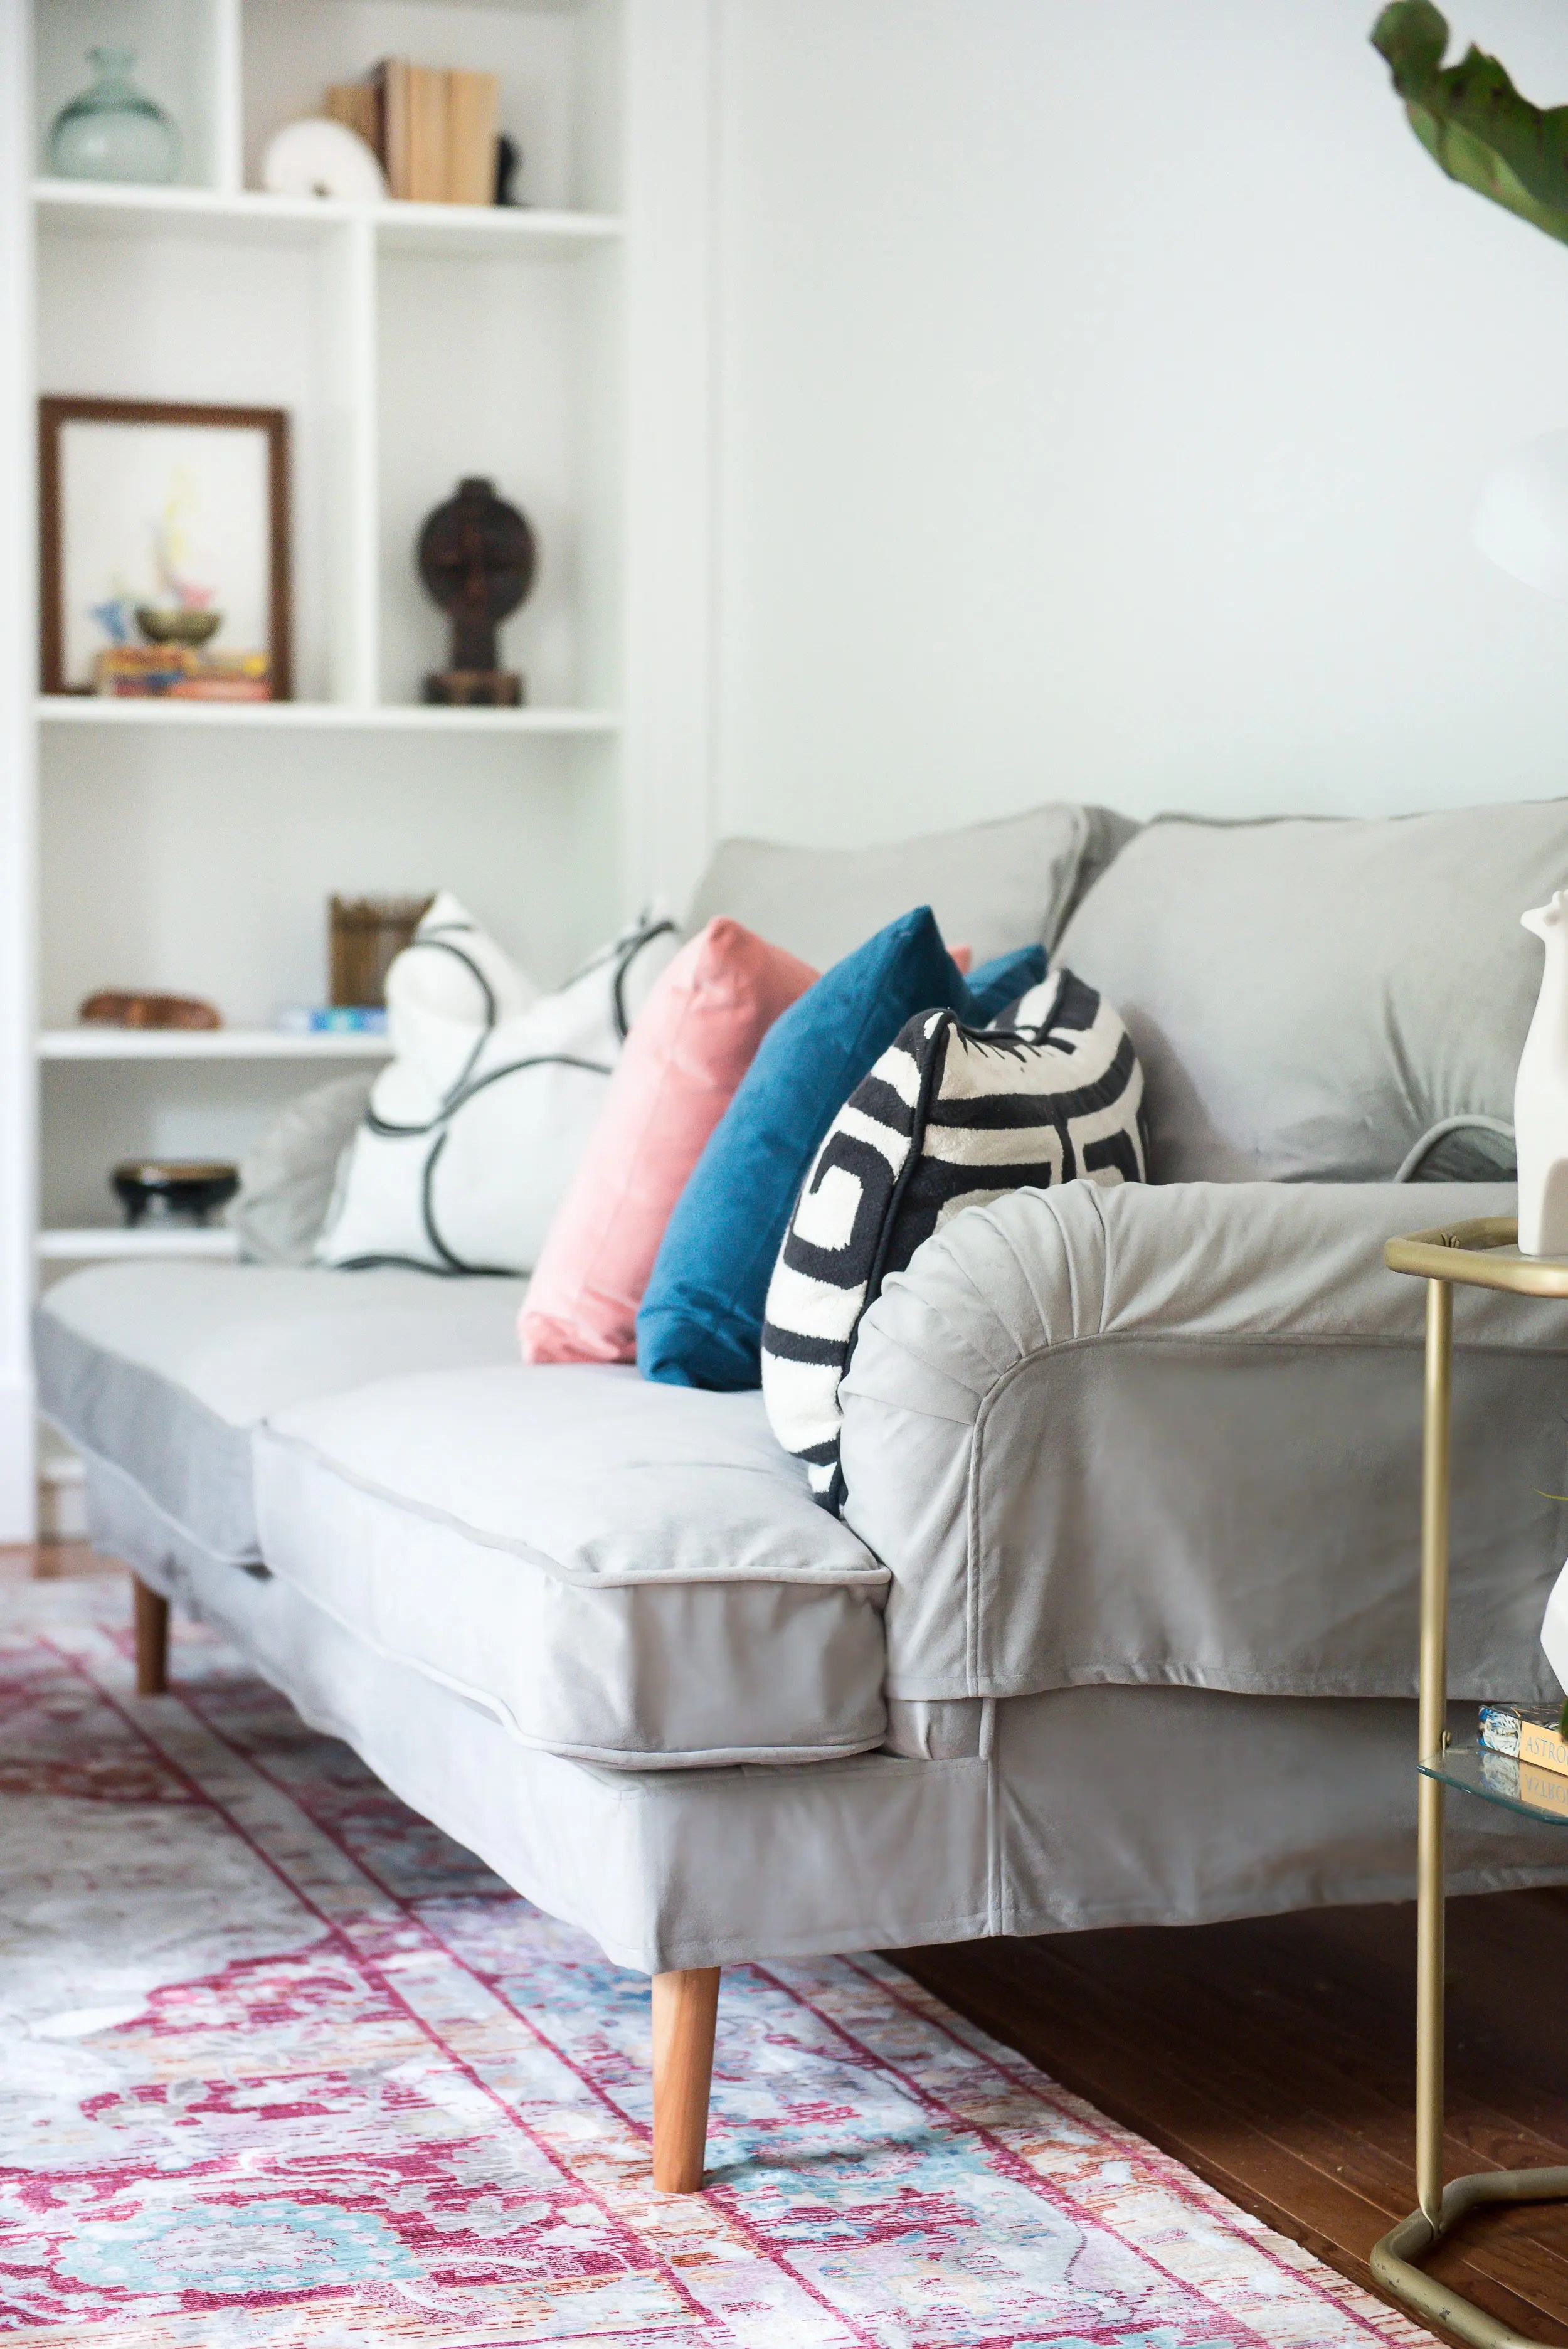 We may earn commission from links on this page, but we only recommend products we back. IKEA Stocksund Sofa Series (2014) Review - New at IKEA!